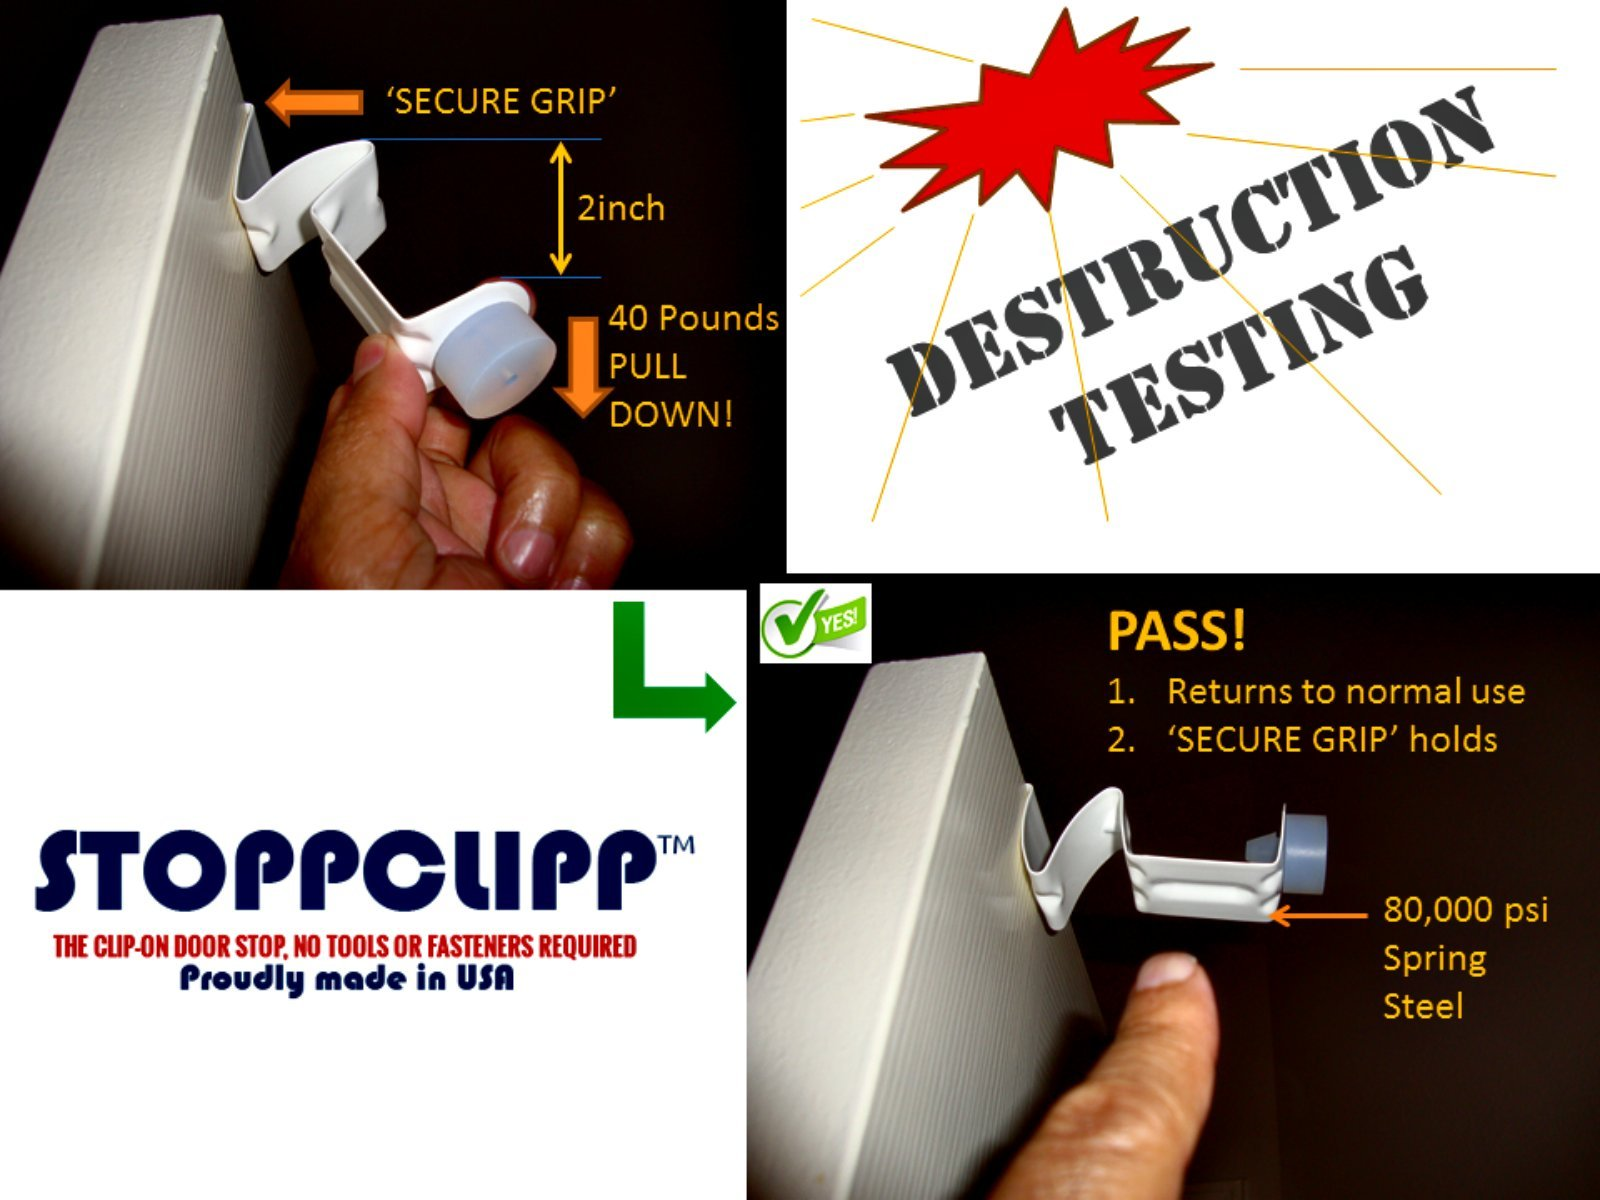 StoppClipp Premium EXTERIOR Door Stopper, Secure EZ Clip-On Door Stop, Tamper-proof Children's fingers or toes pinch guard, Prevents Pets lockout, 100% Made In USA (2 PK EXTERIOR DOOR STAINED) by StoppClipp (Image #5)